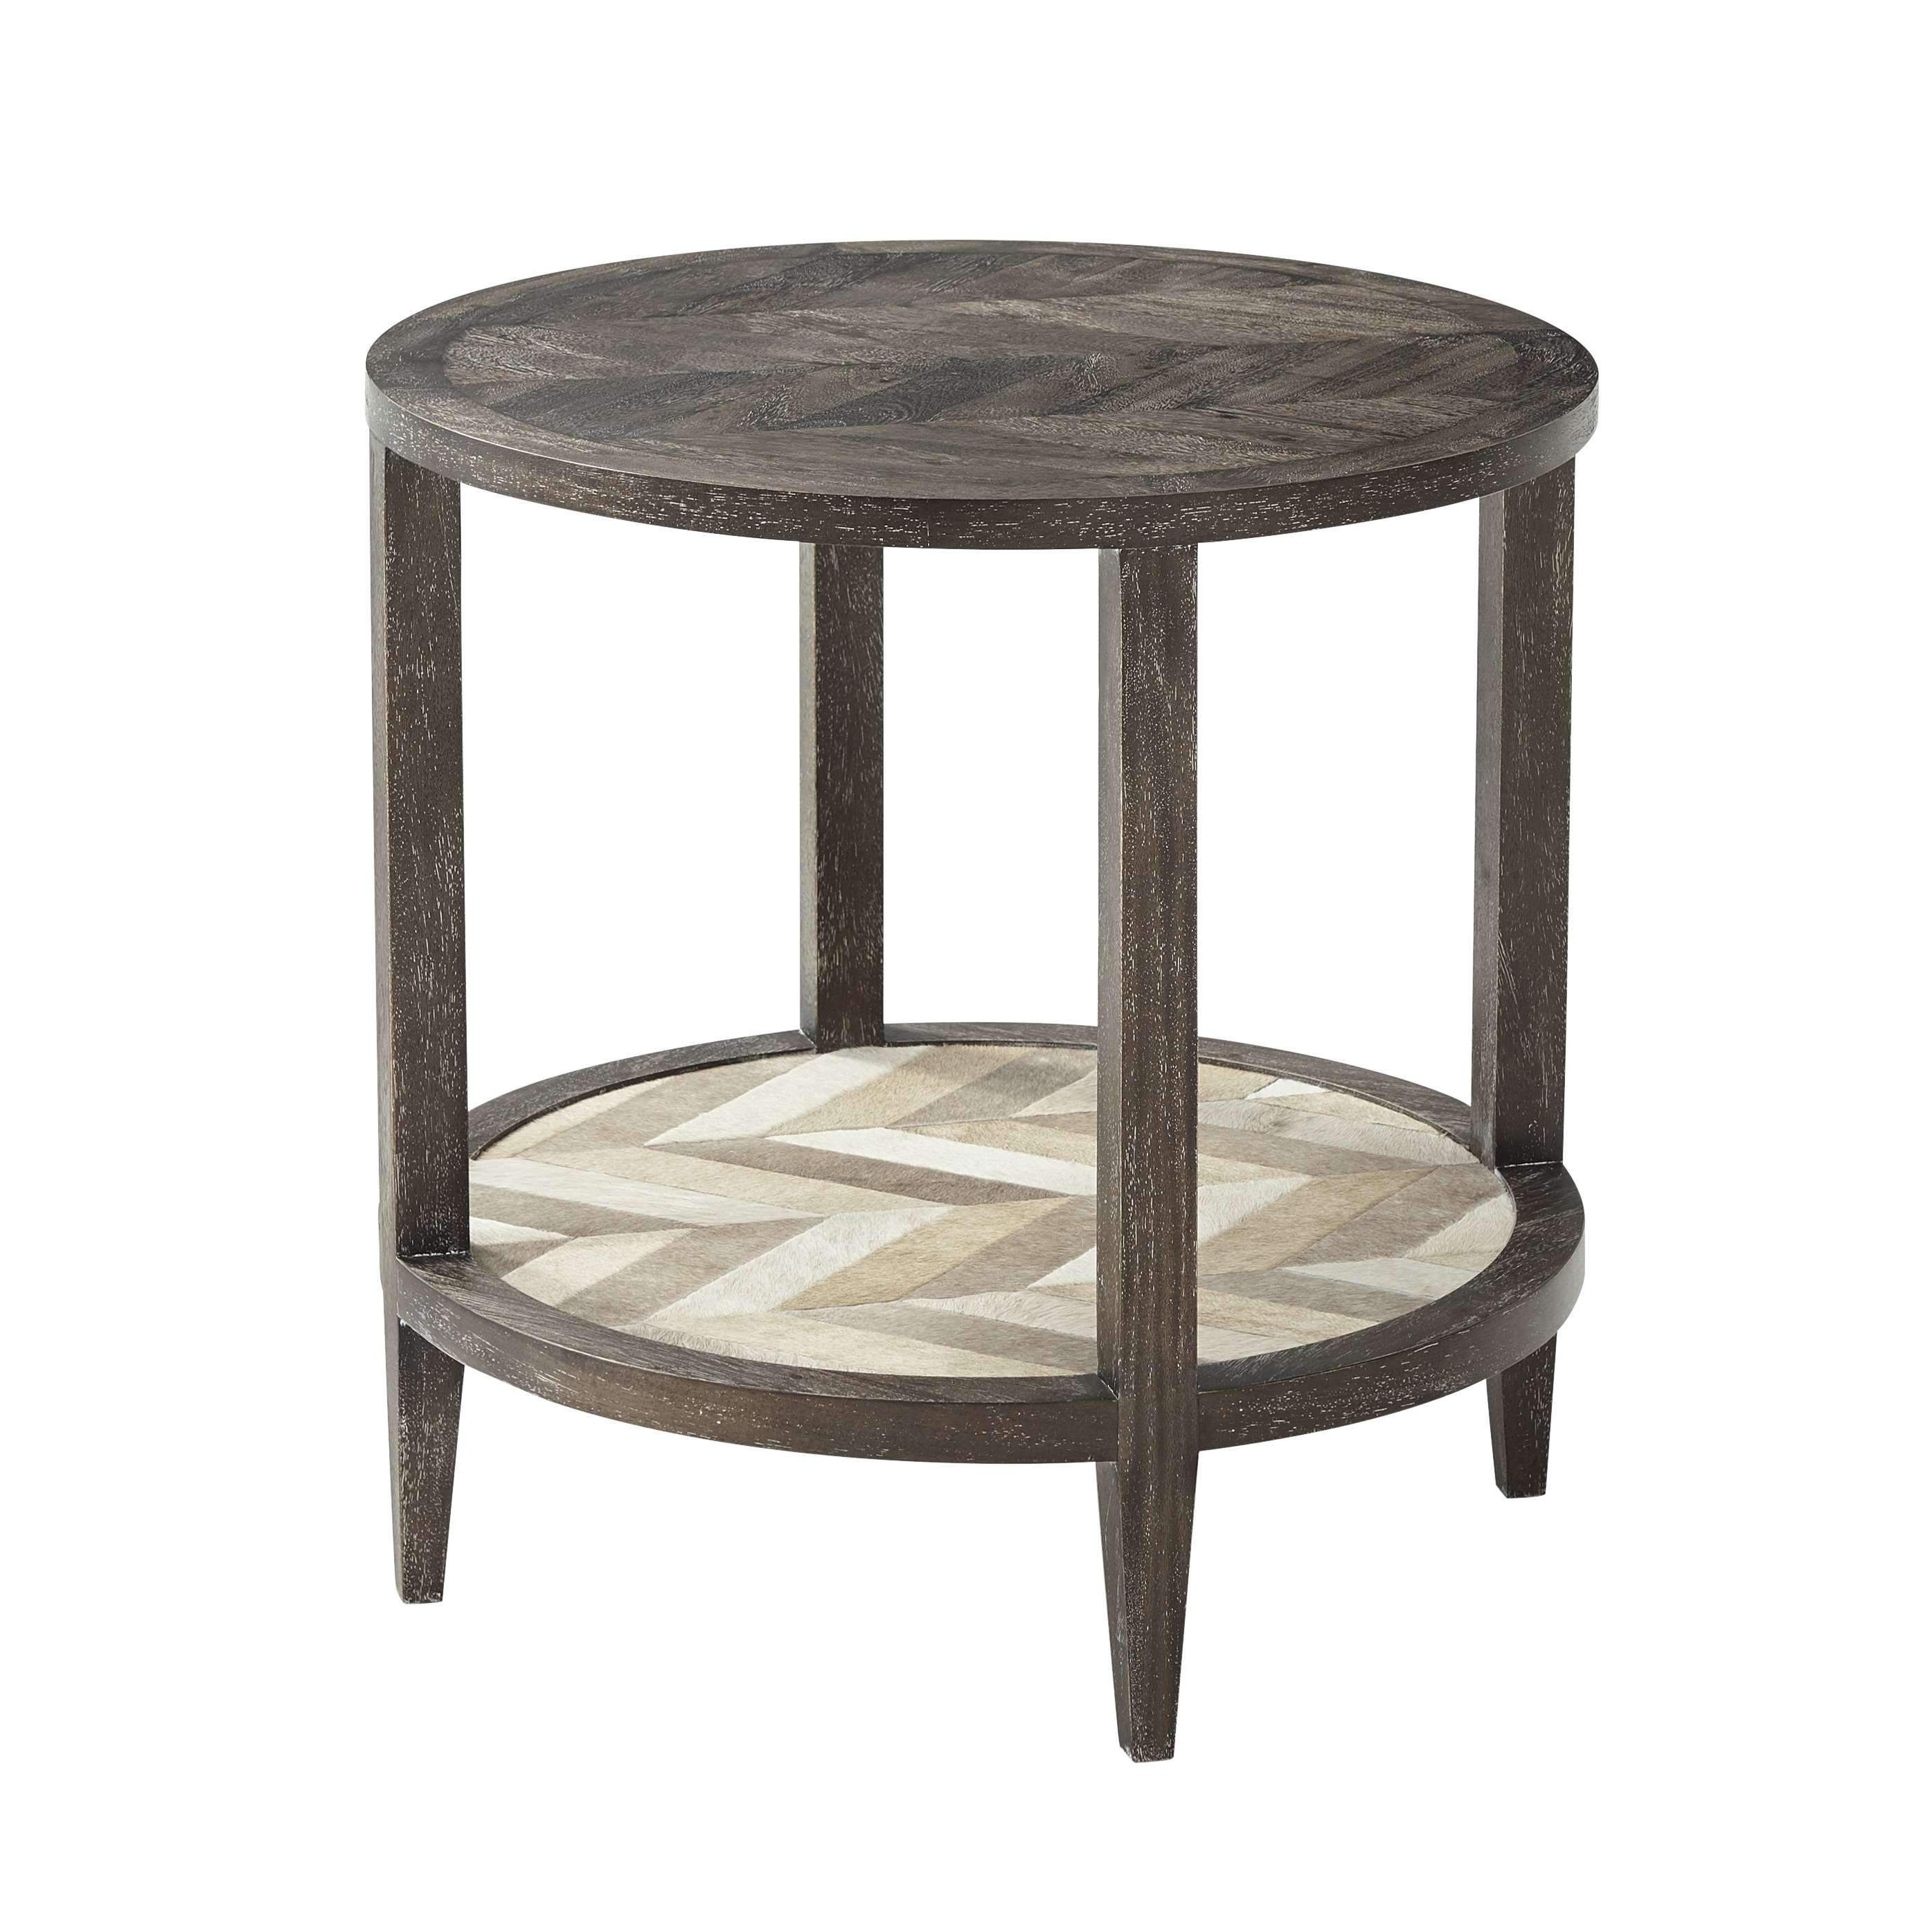 Marco Accent Round Side Tabledefault Title In 2020 End Tables Living Room Side Table Side Table [ 2790 x 2790 Pixel ]